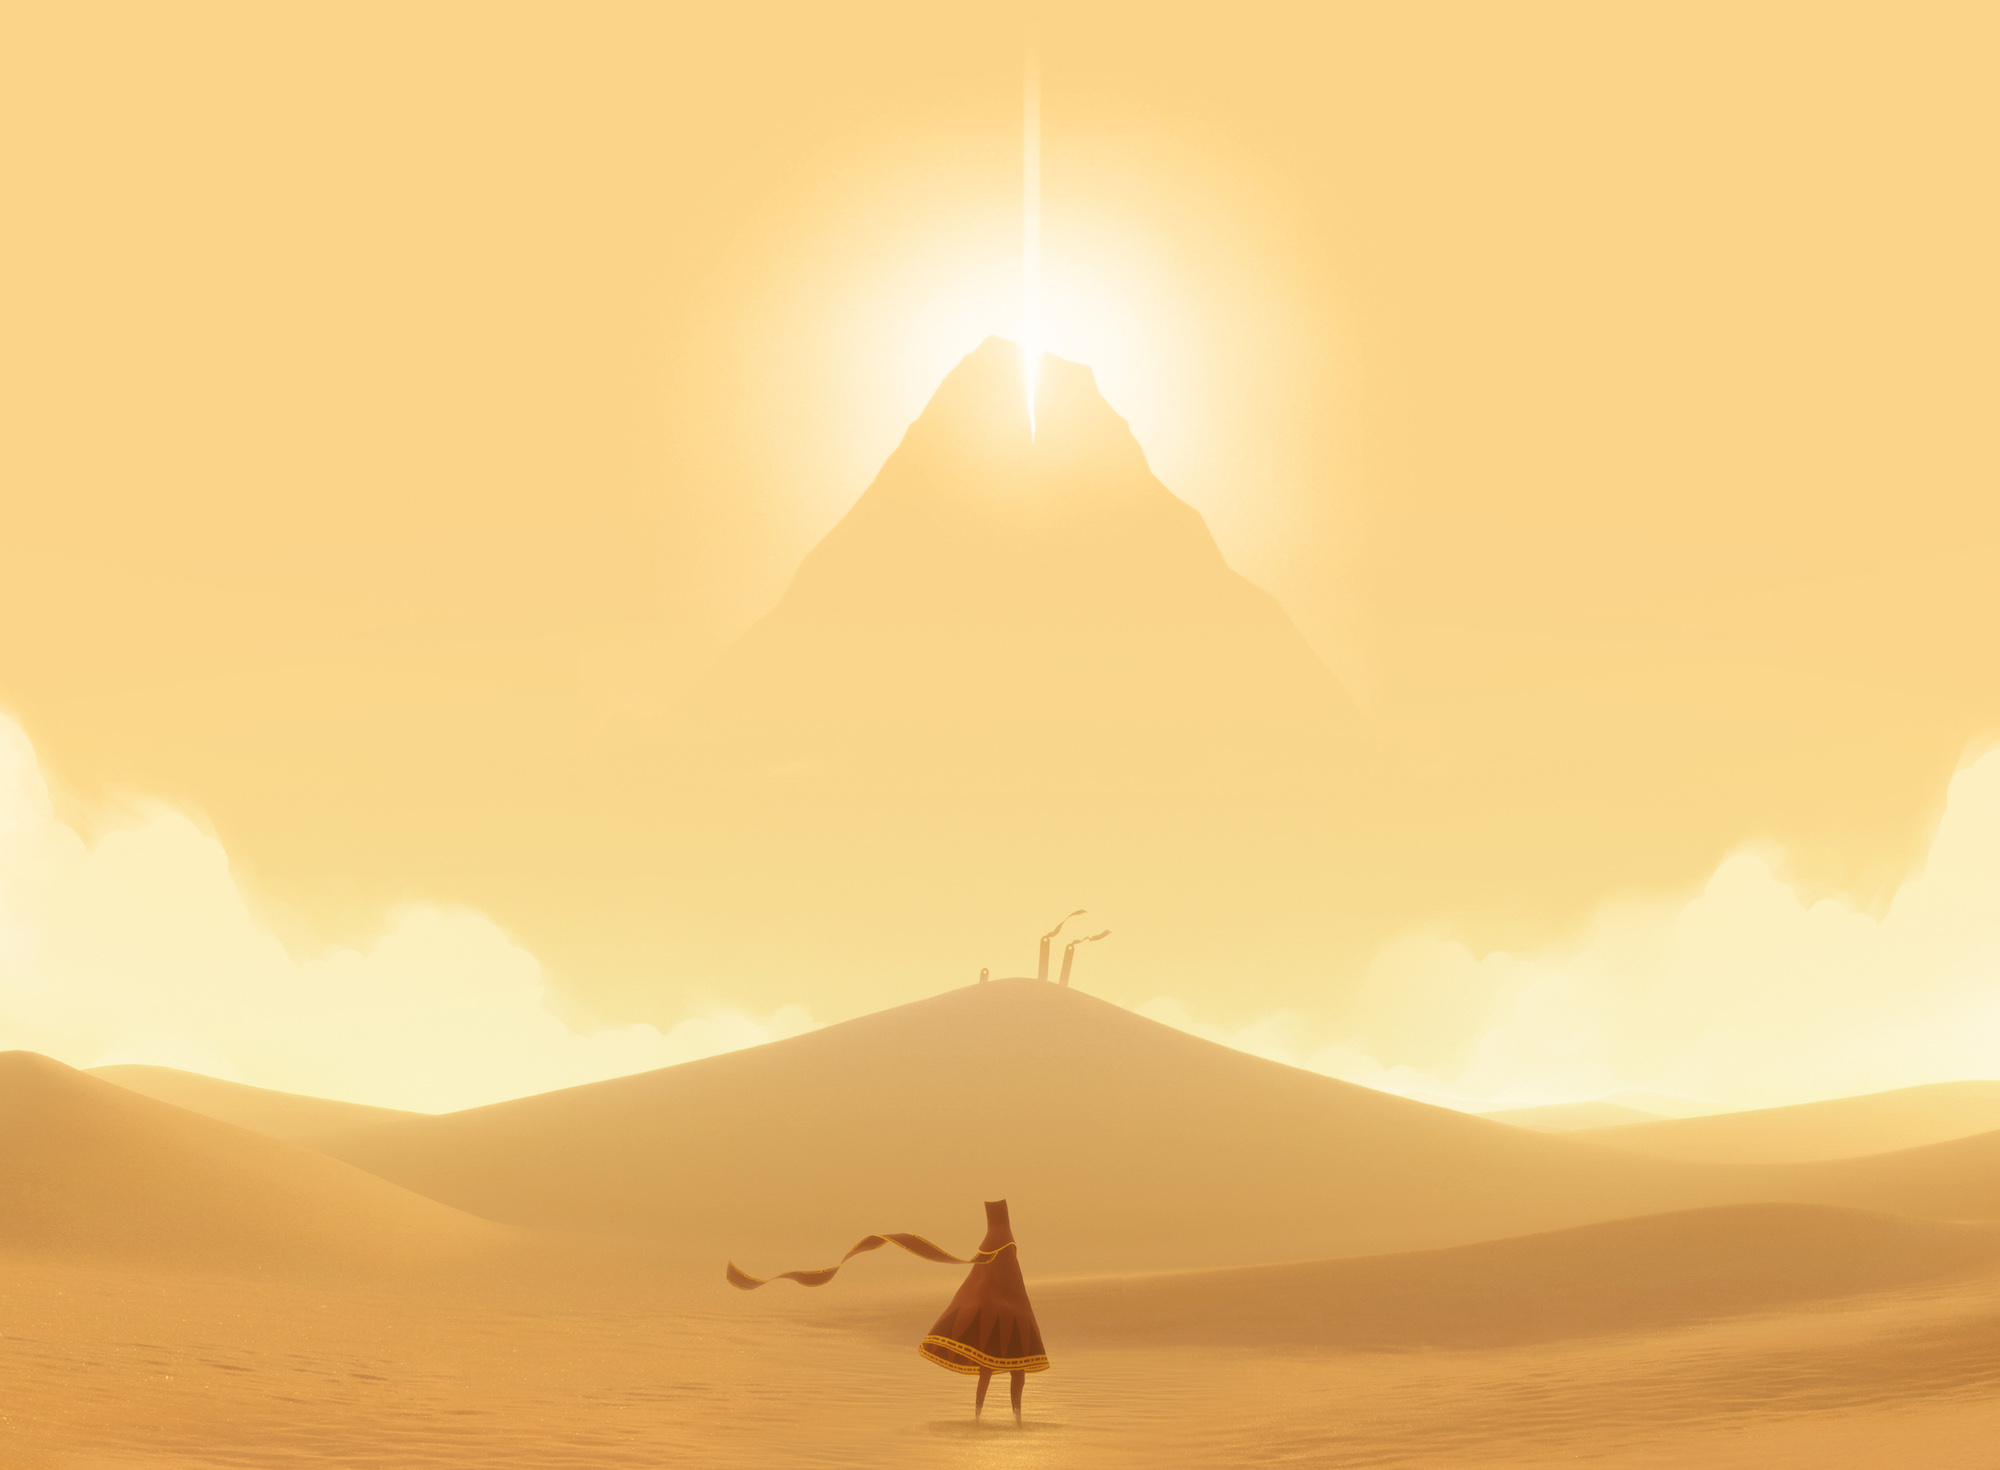 Screenshot, JourneyTM © 2012, 2014 Sony Interactive Entertainment LLC. Journey is a trademark of Sony Interactive Entertainment LLC. Developed by Thatgamecompany